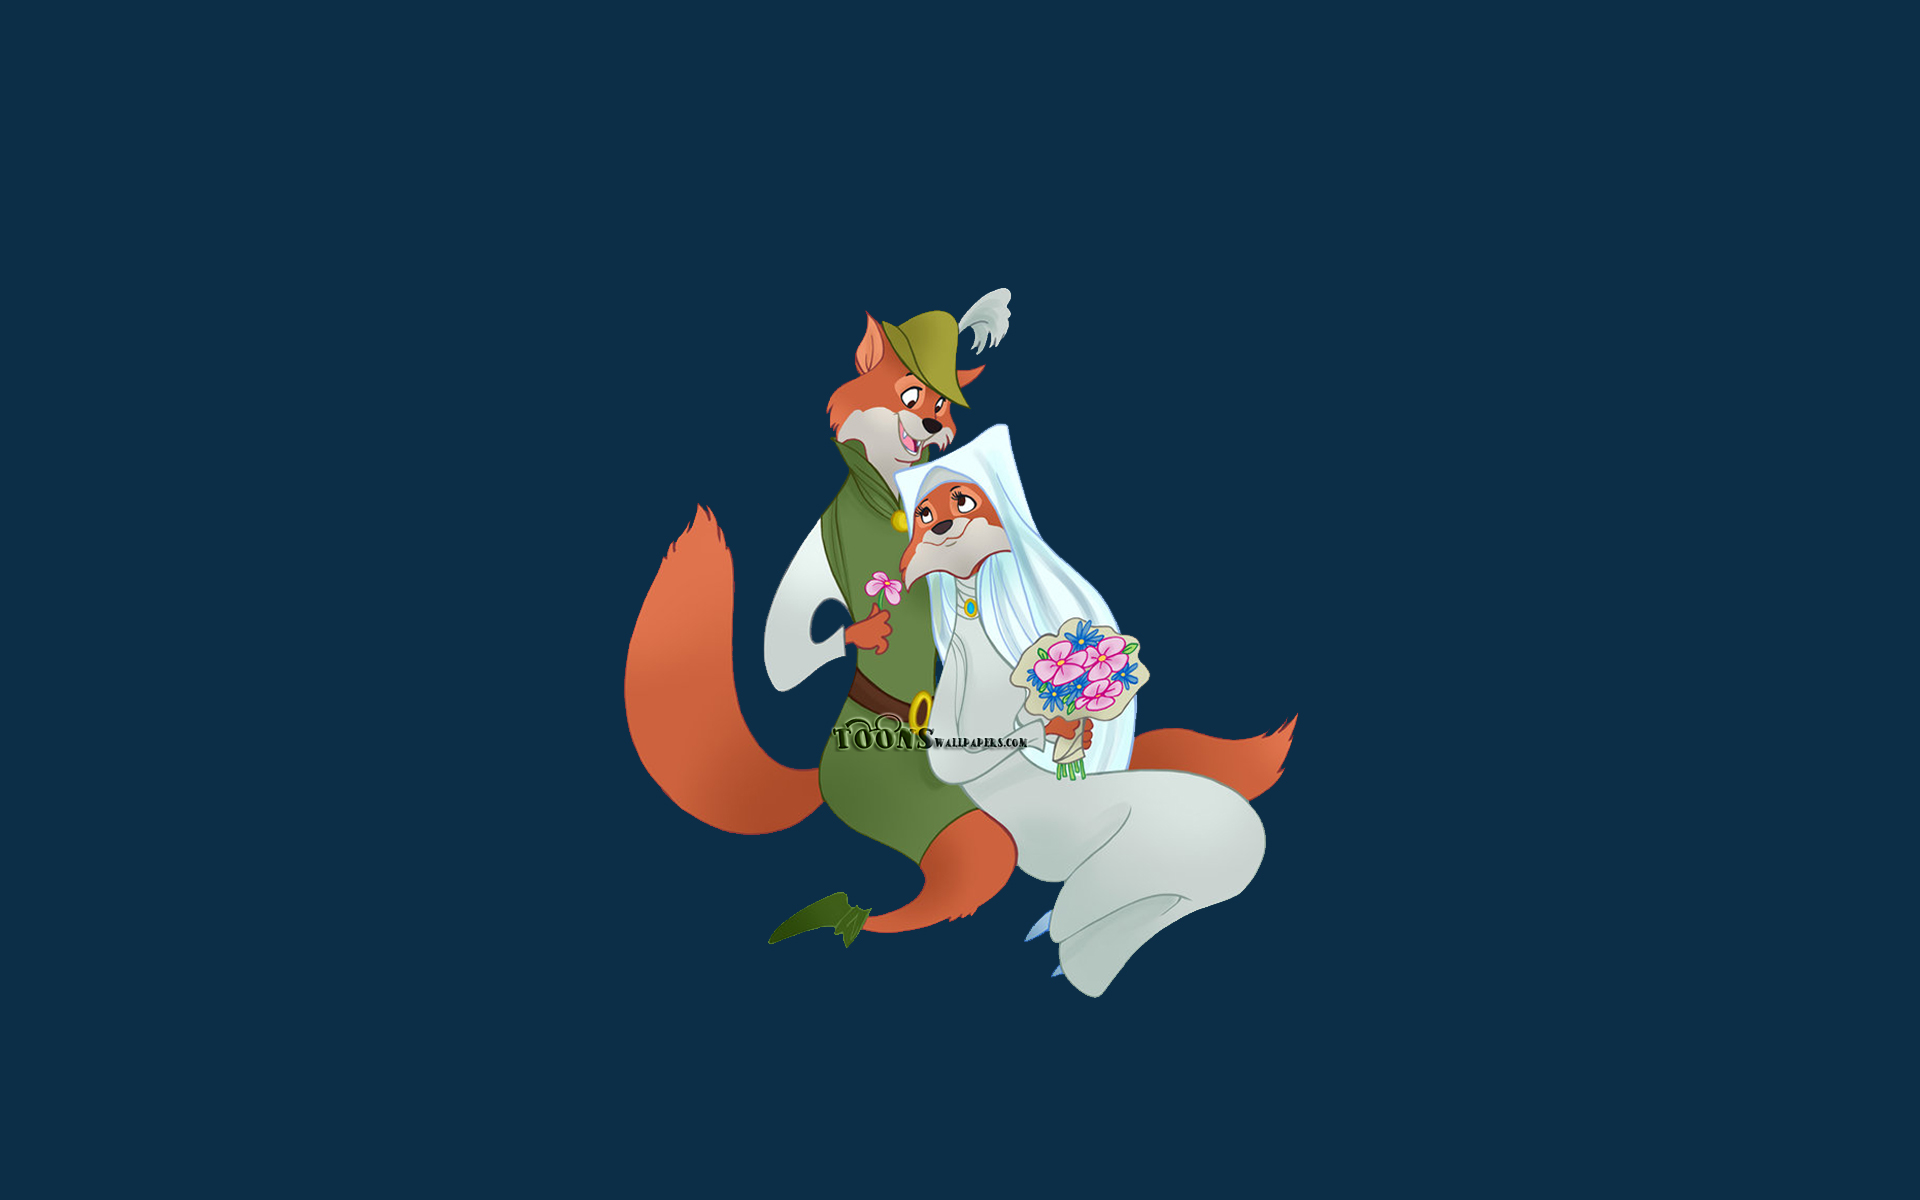 Robin hood computer wallpapers desktop backgrounds - Hood cartoon wallpaper ...